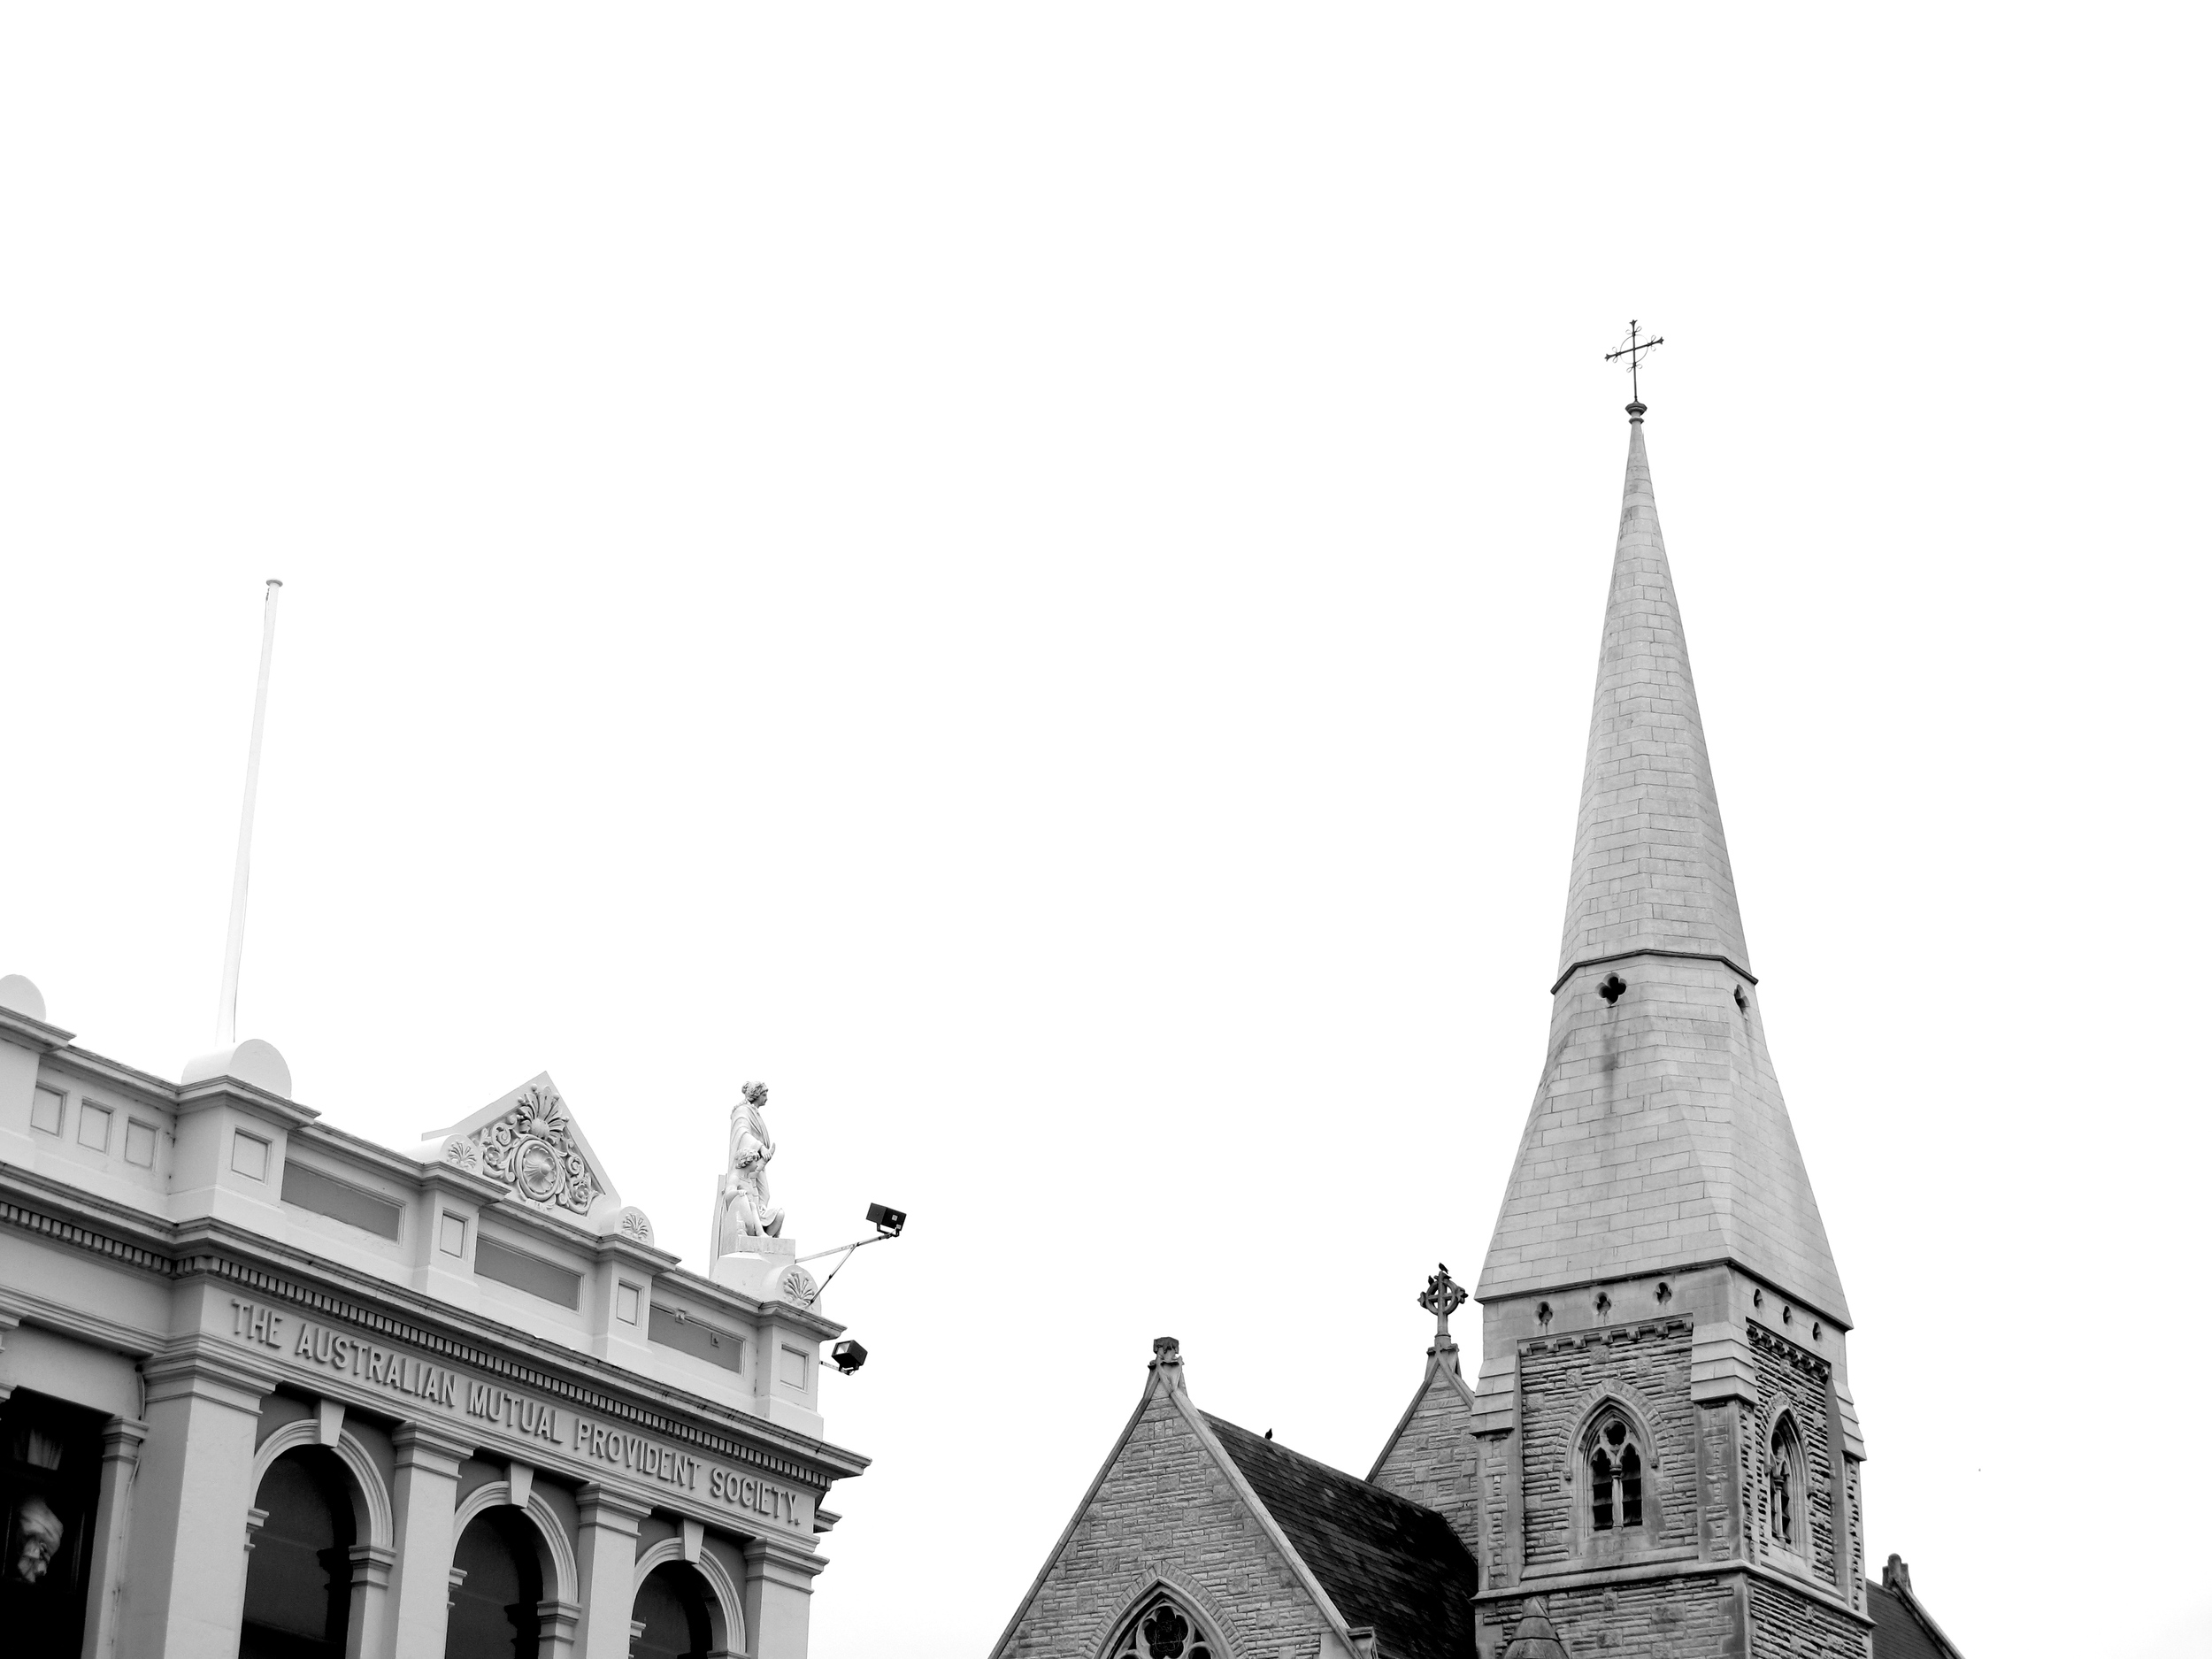 Church steeple and old buildings in Victorian precinct, Oamaru